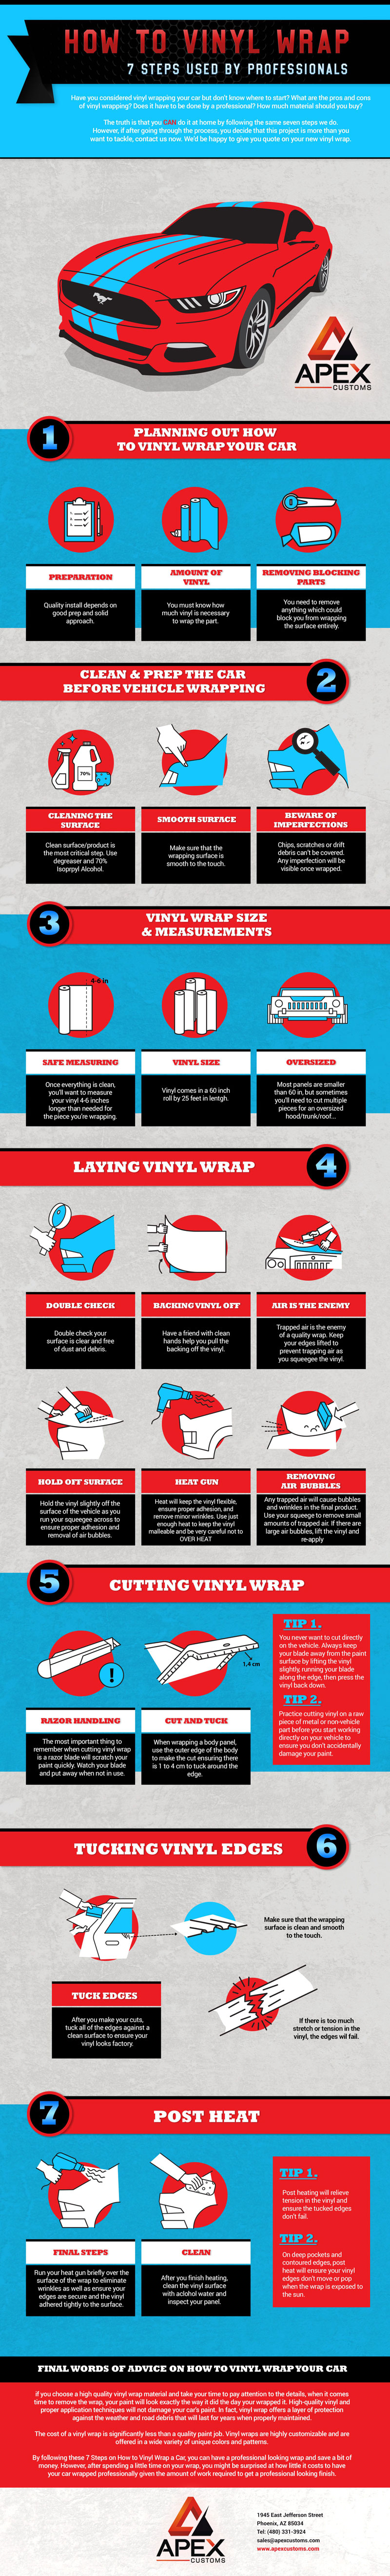 How to Vinyl Wrap: The 7 Steps Used By Professionals